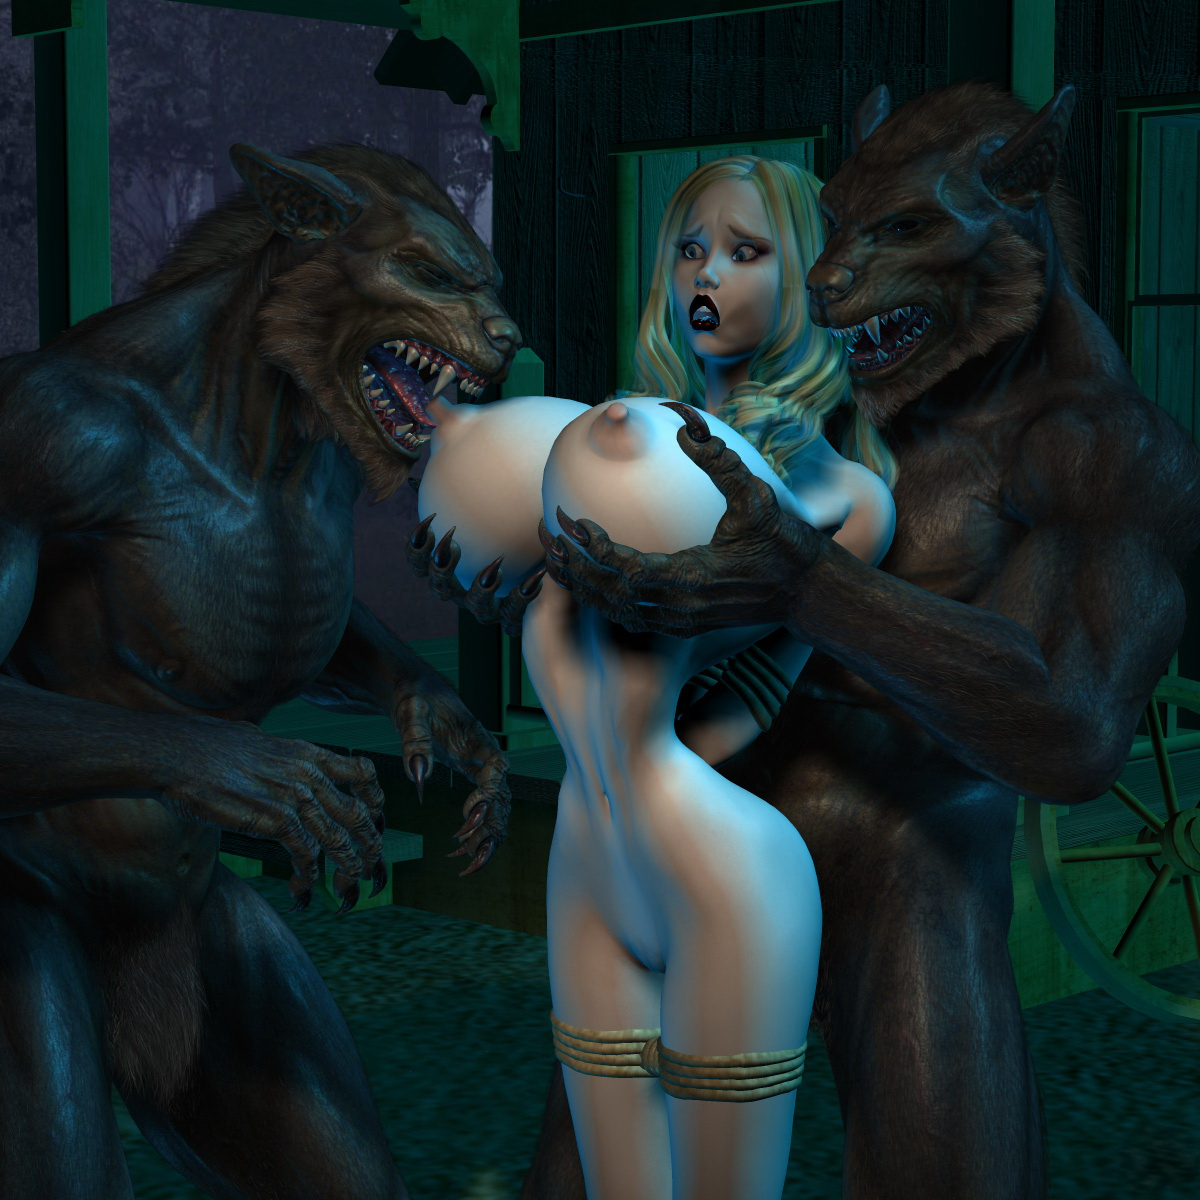 Monster werewolf sex 3d hentai porncraft girls